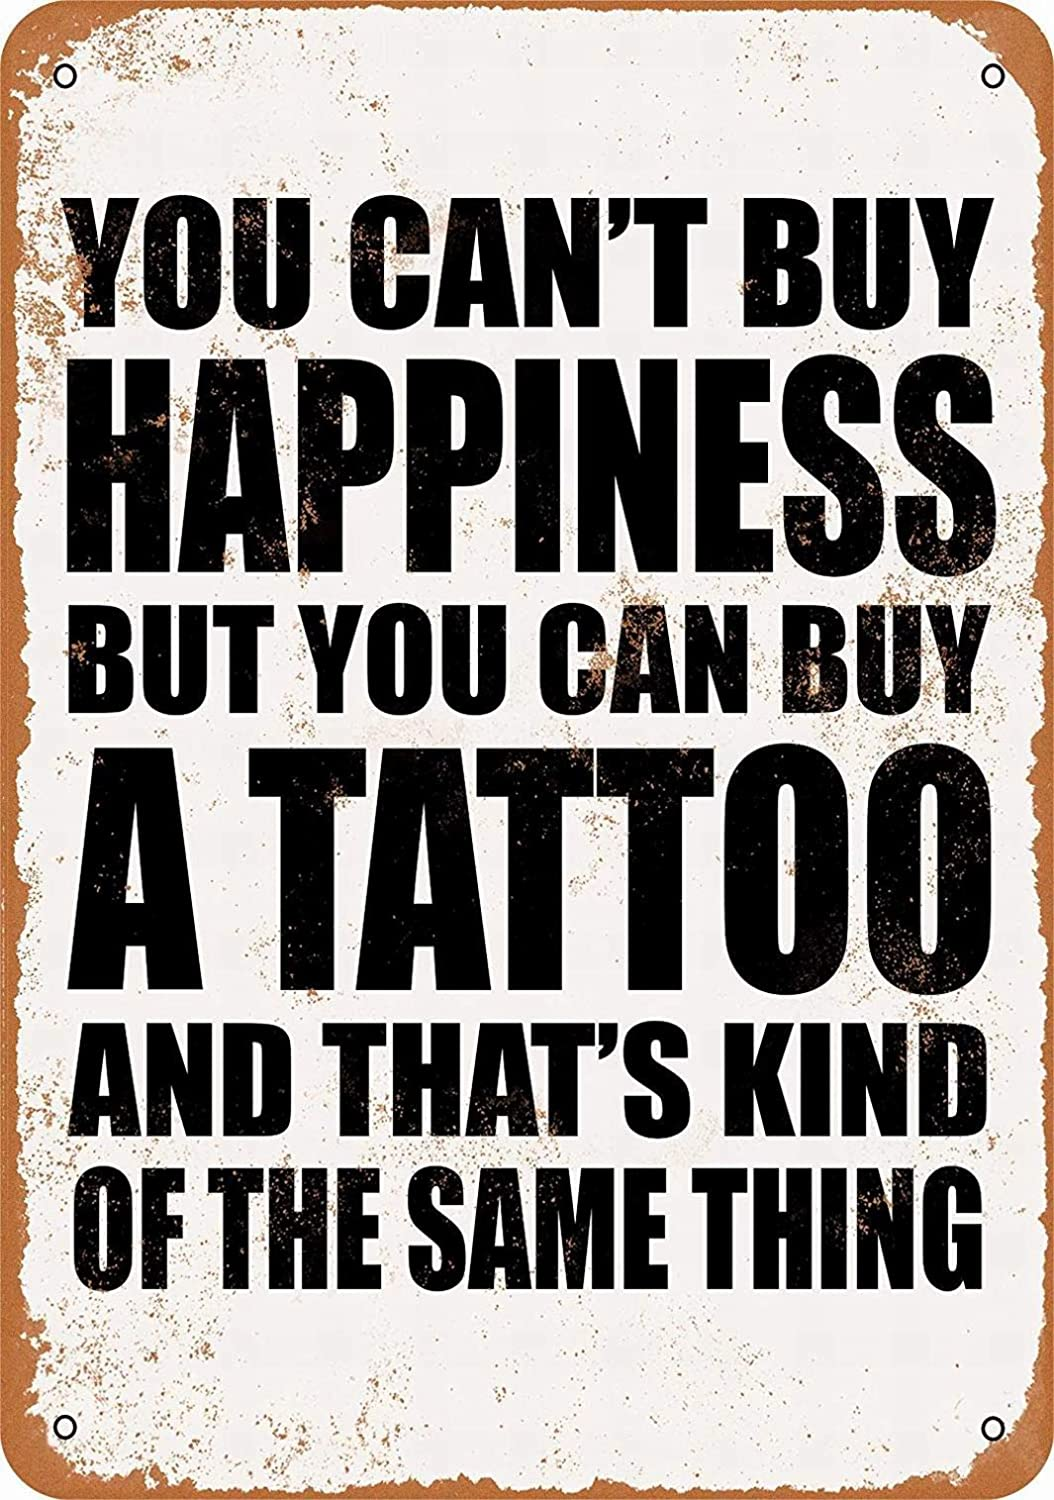 LoMall 8 x 12 Metal Sign - You Can't Buy Happiness But You Can Buy a Tattoo - Vintage Wall Decor Art